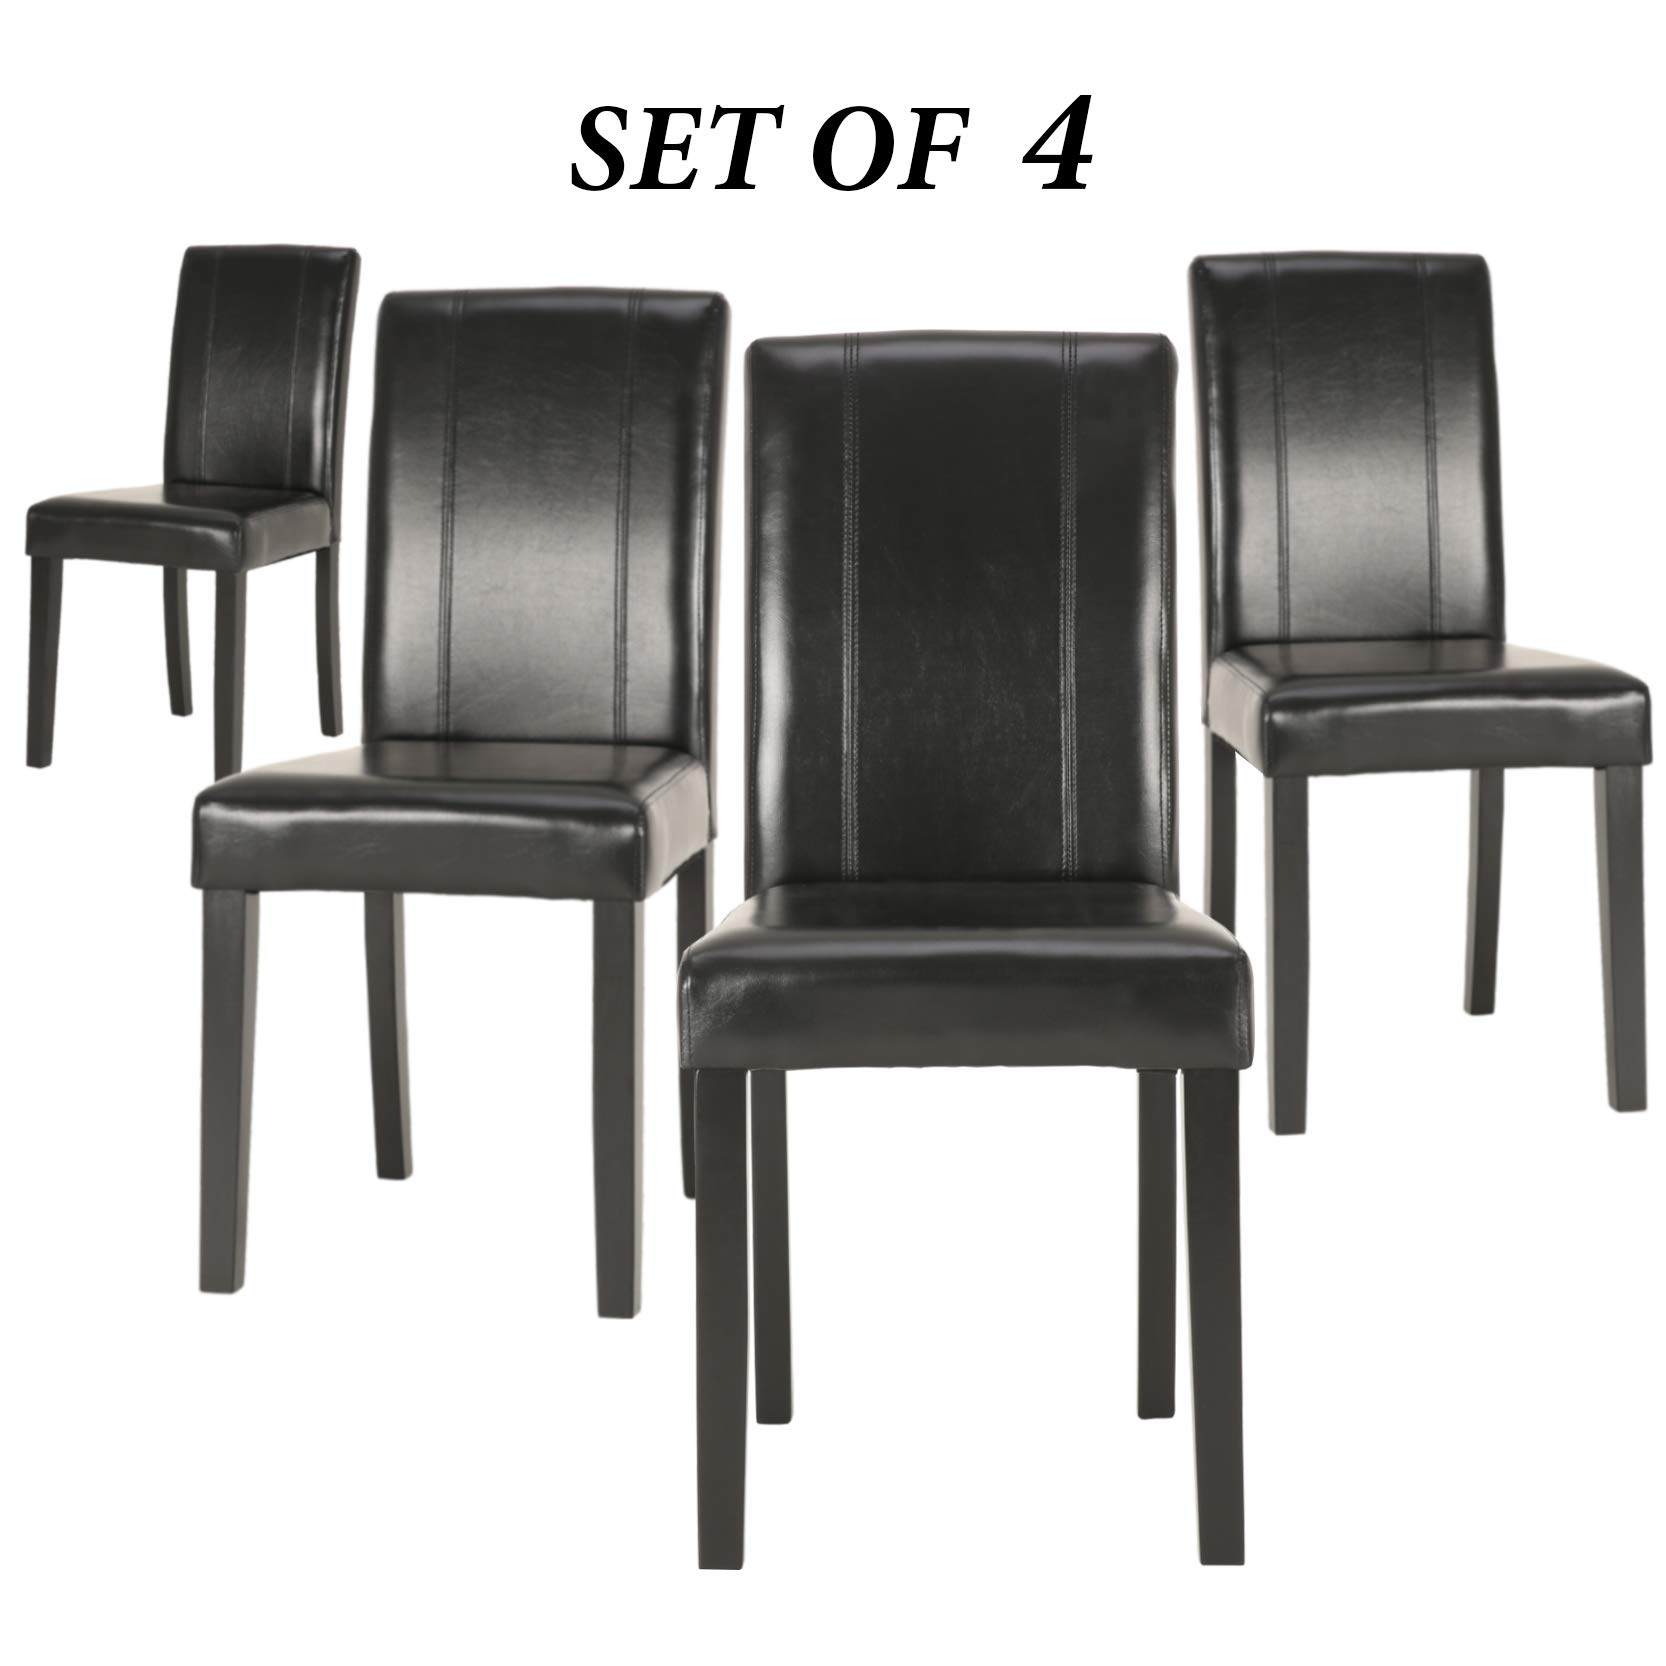 Upholstered Dining Chairs with Solid Wooden Legs, Modern Stylish PU Leather Padded Parsons Chairs Set of 4 (Black) by GOTMINSI